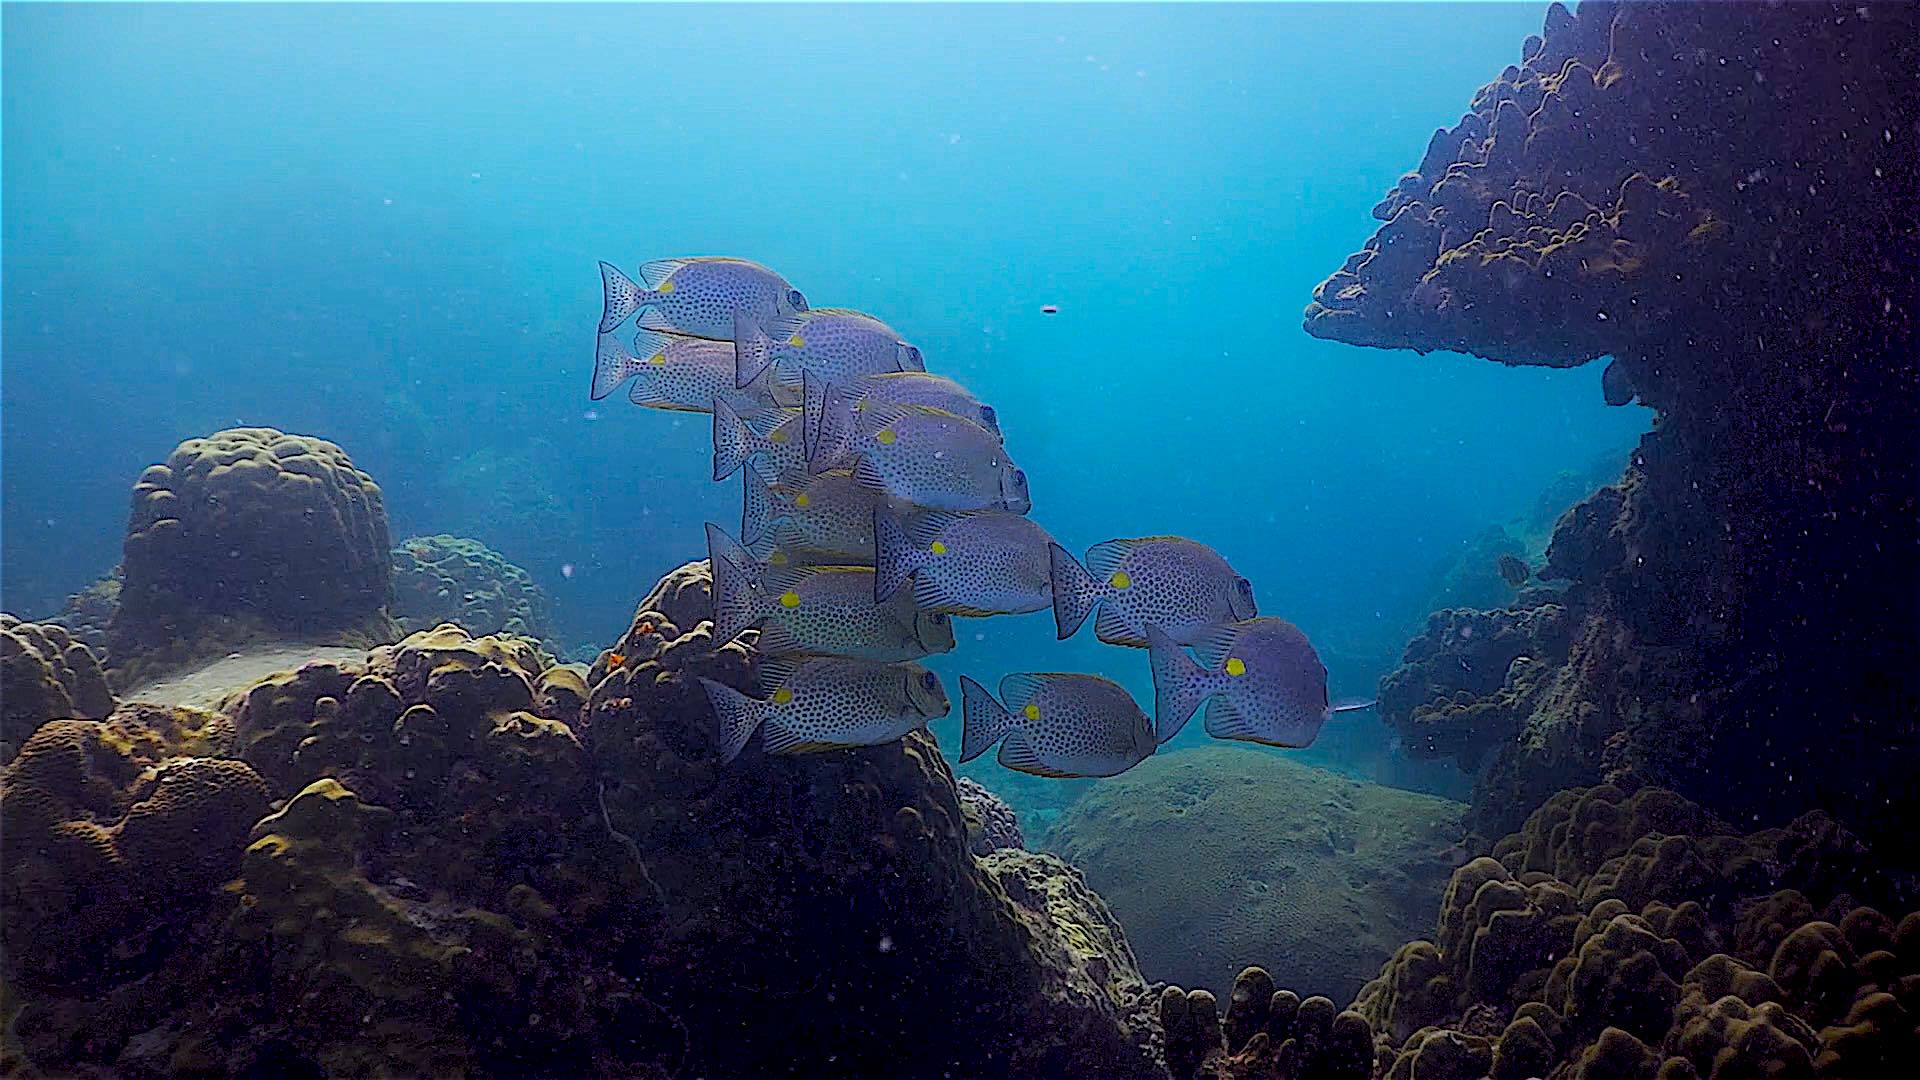 www.thefunkyturtle.com Three Rocks and Pottery dive site koh tao marine life